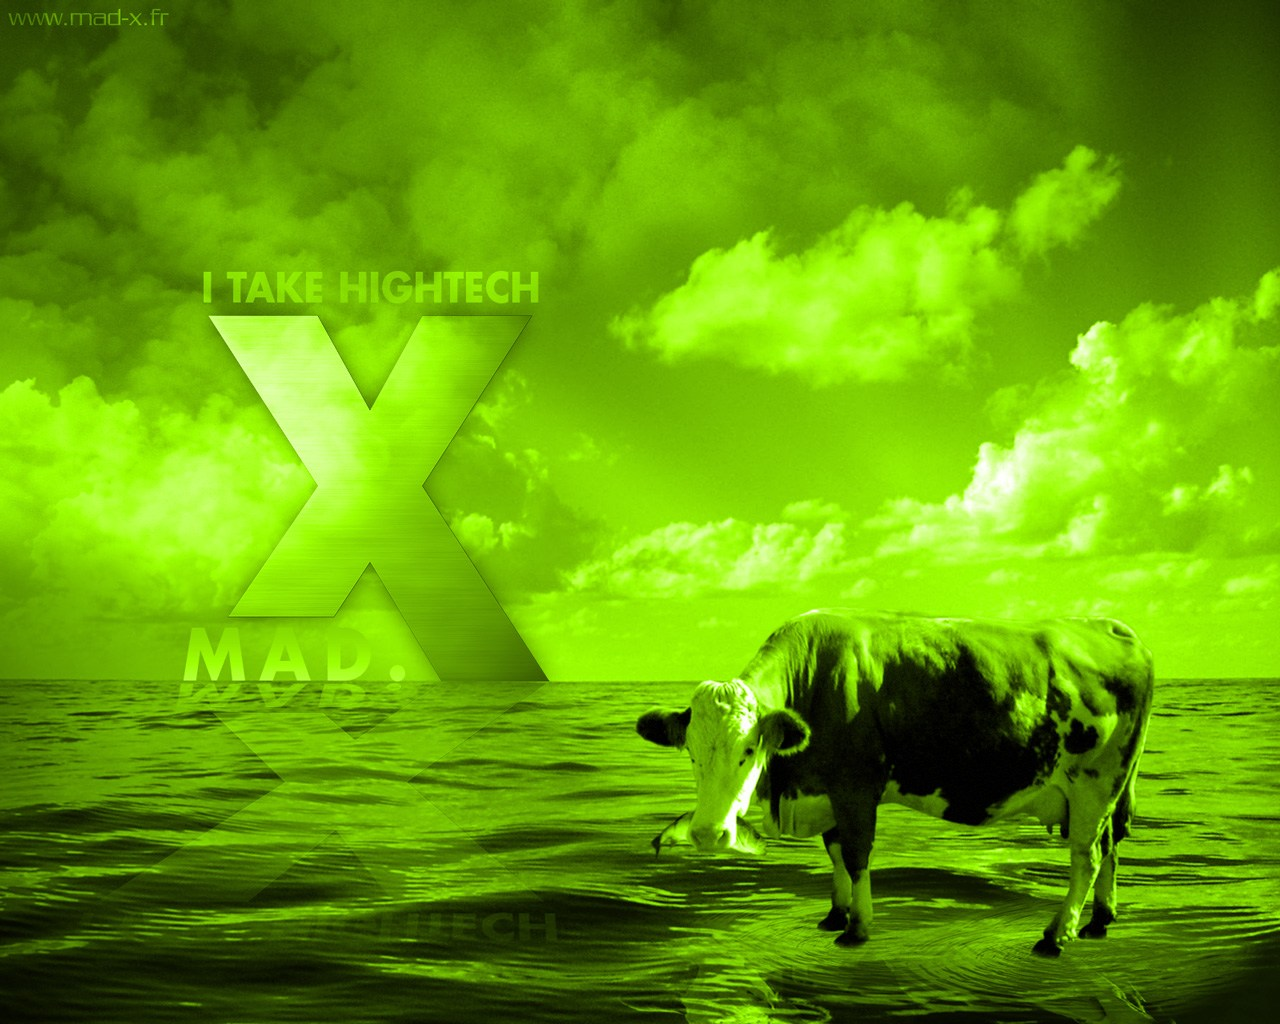 The Mad.X Cow